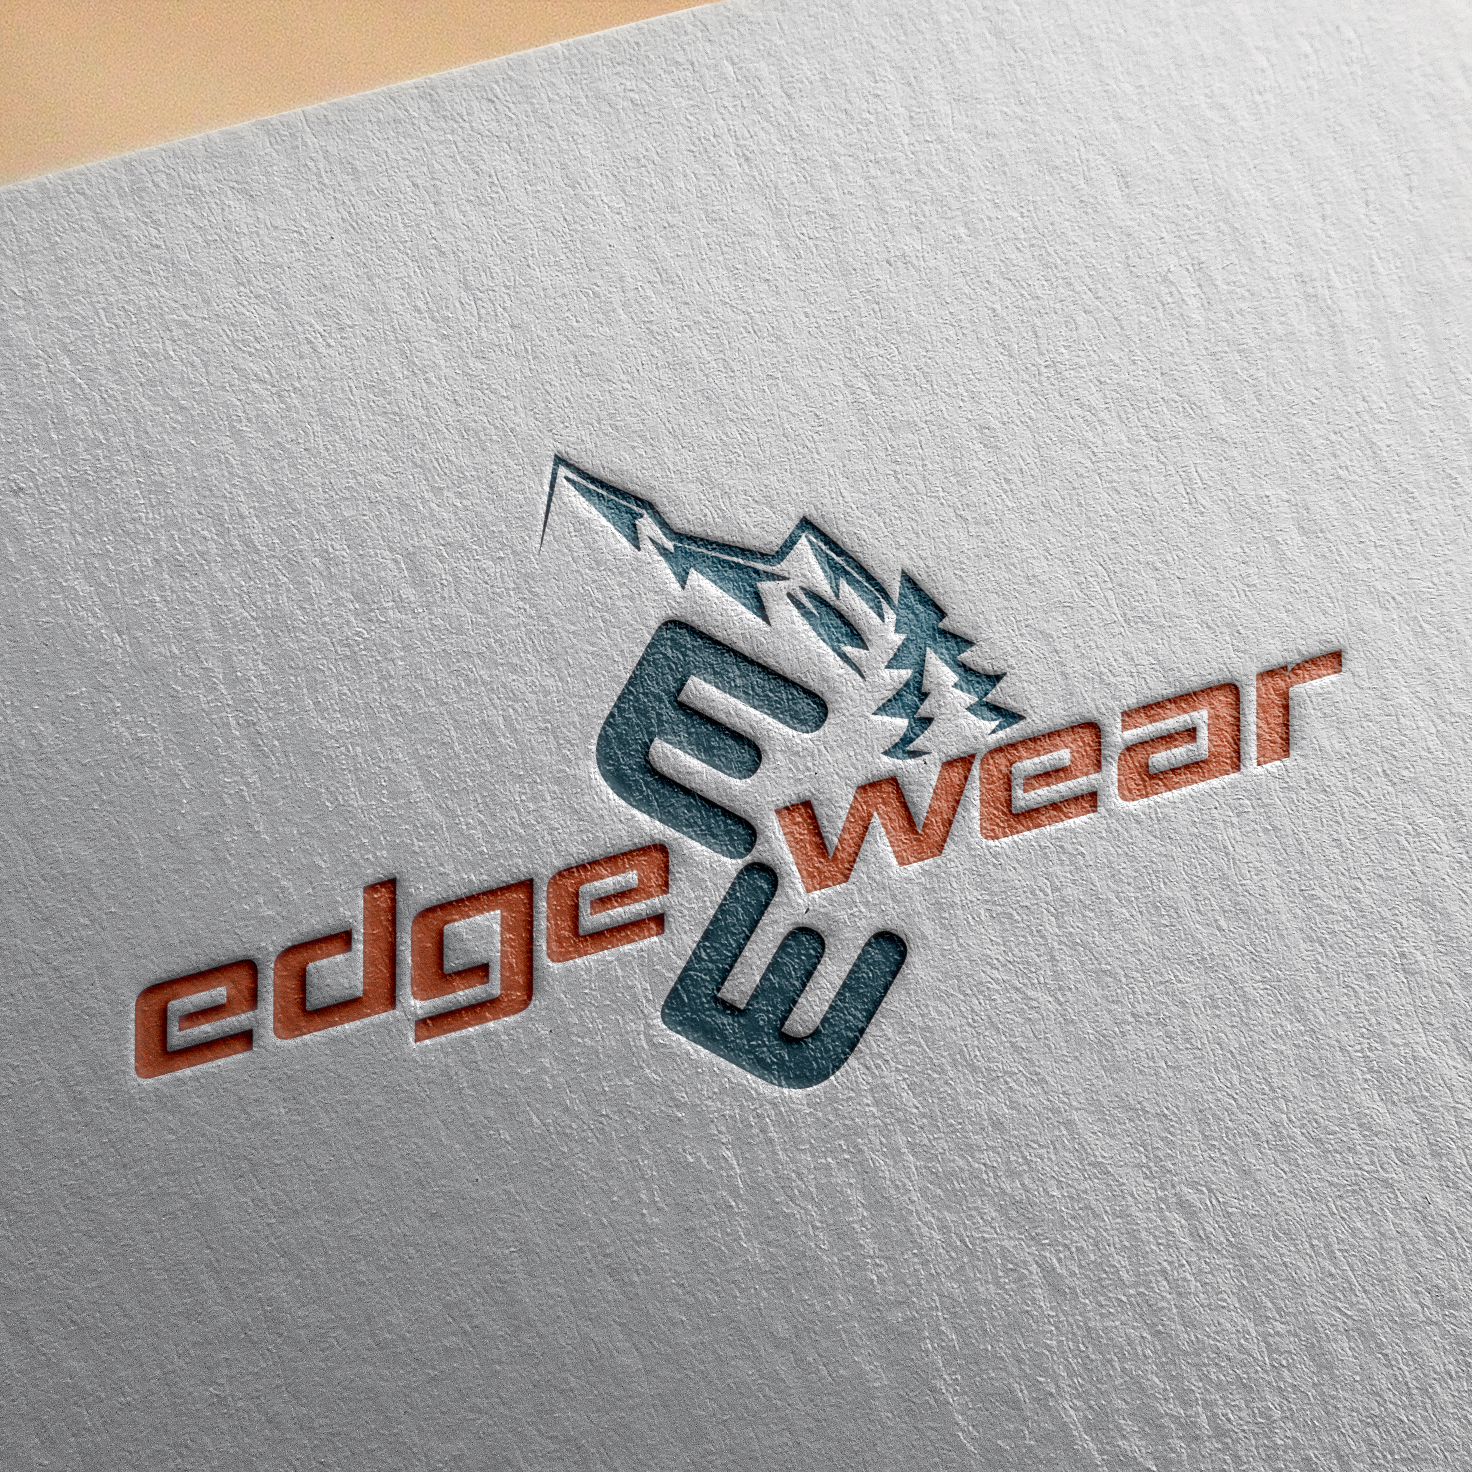 logo-design-graphic-summit-edge-ksengo-branding-miami